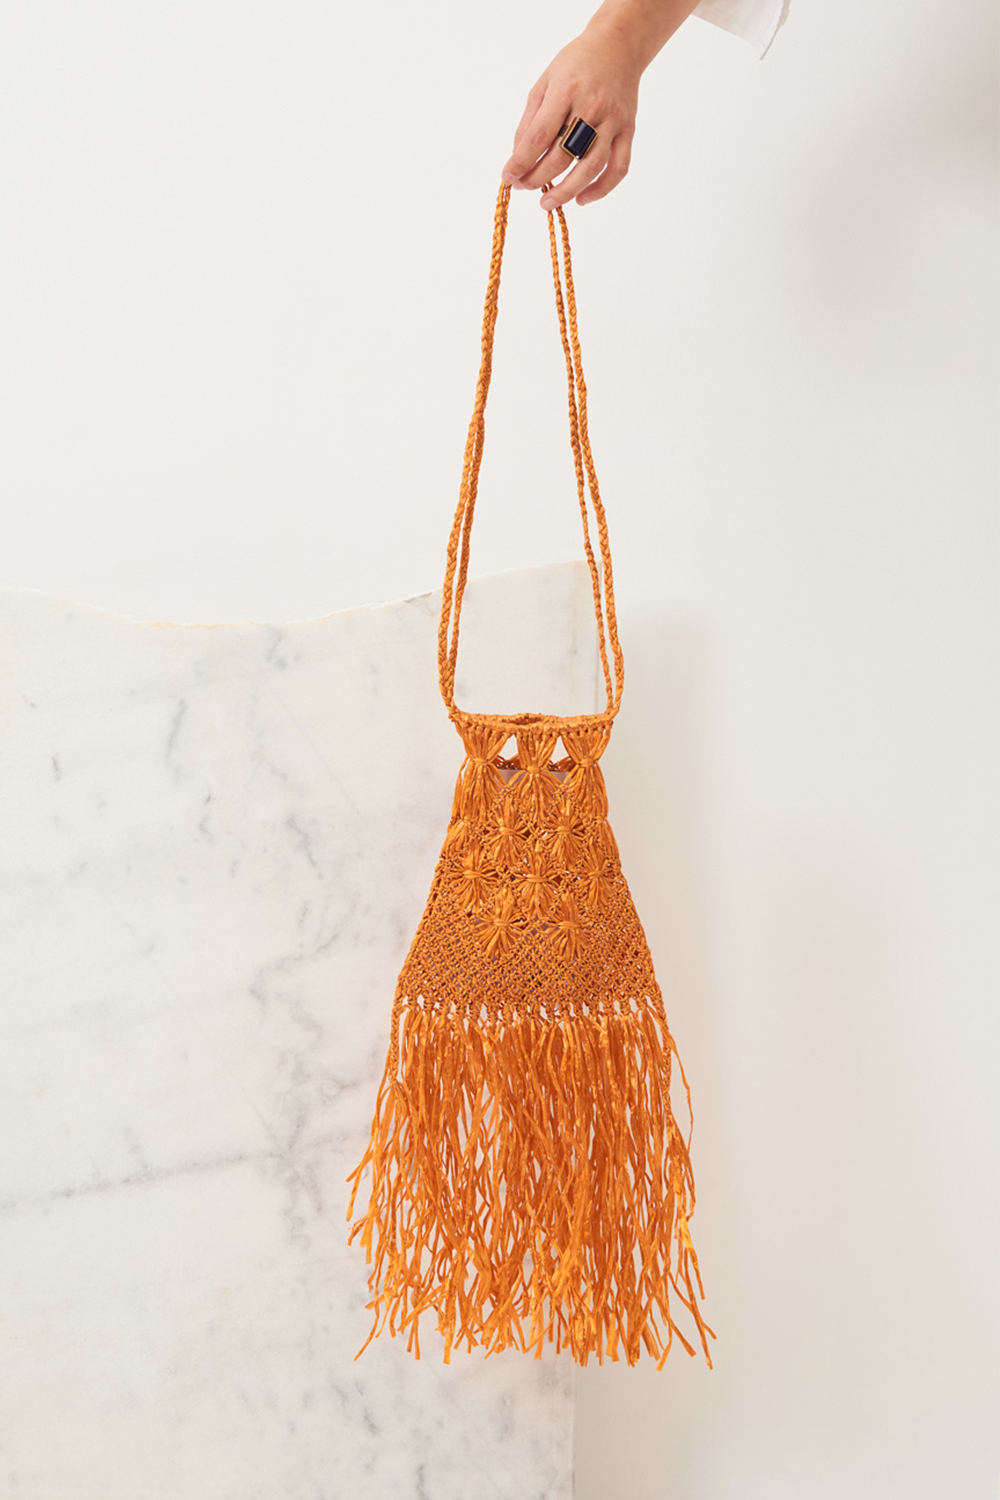 Mini-sac raphia Biim - Orange - Antik Batik (photo)